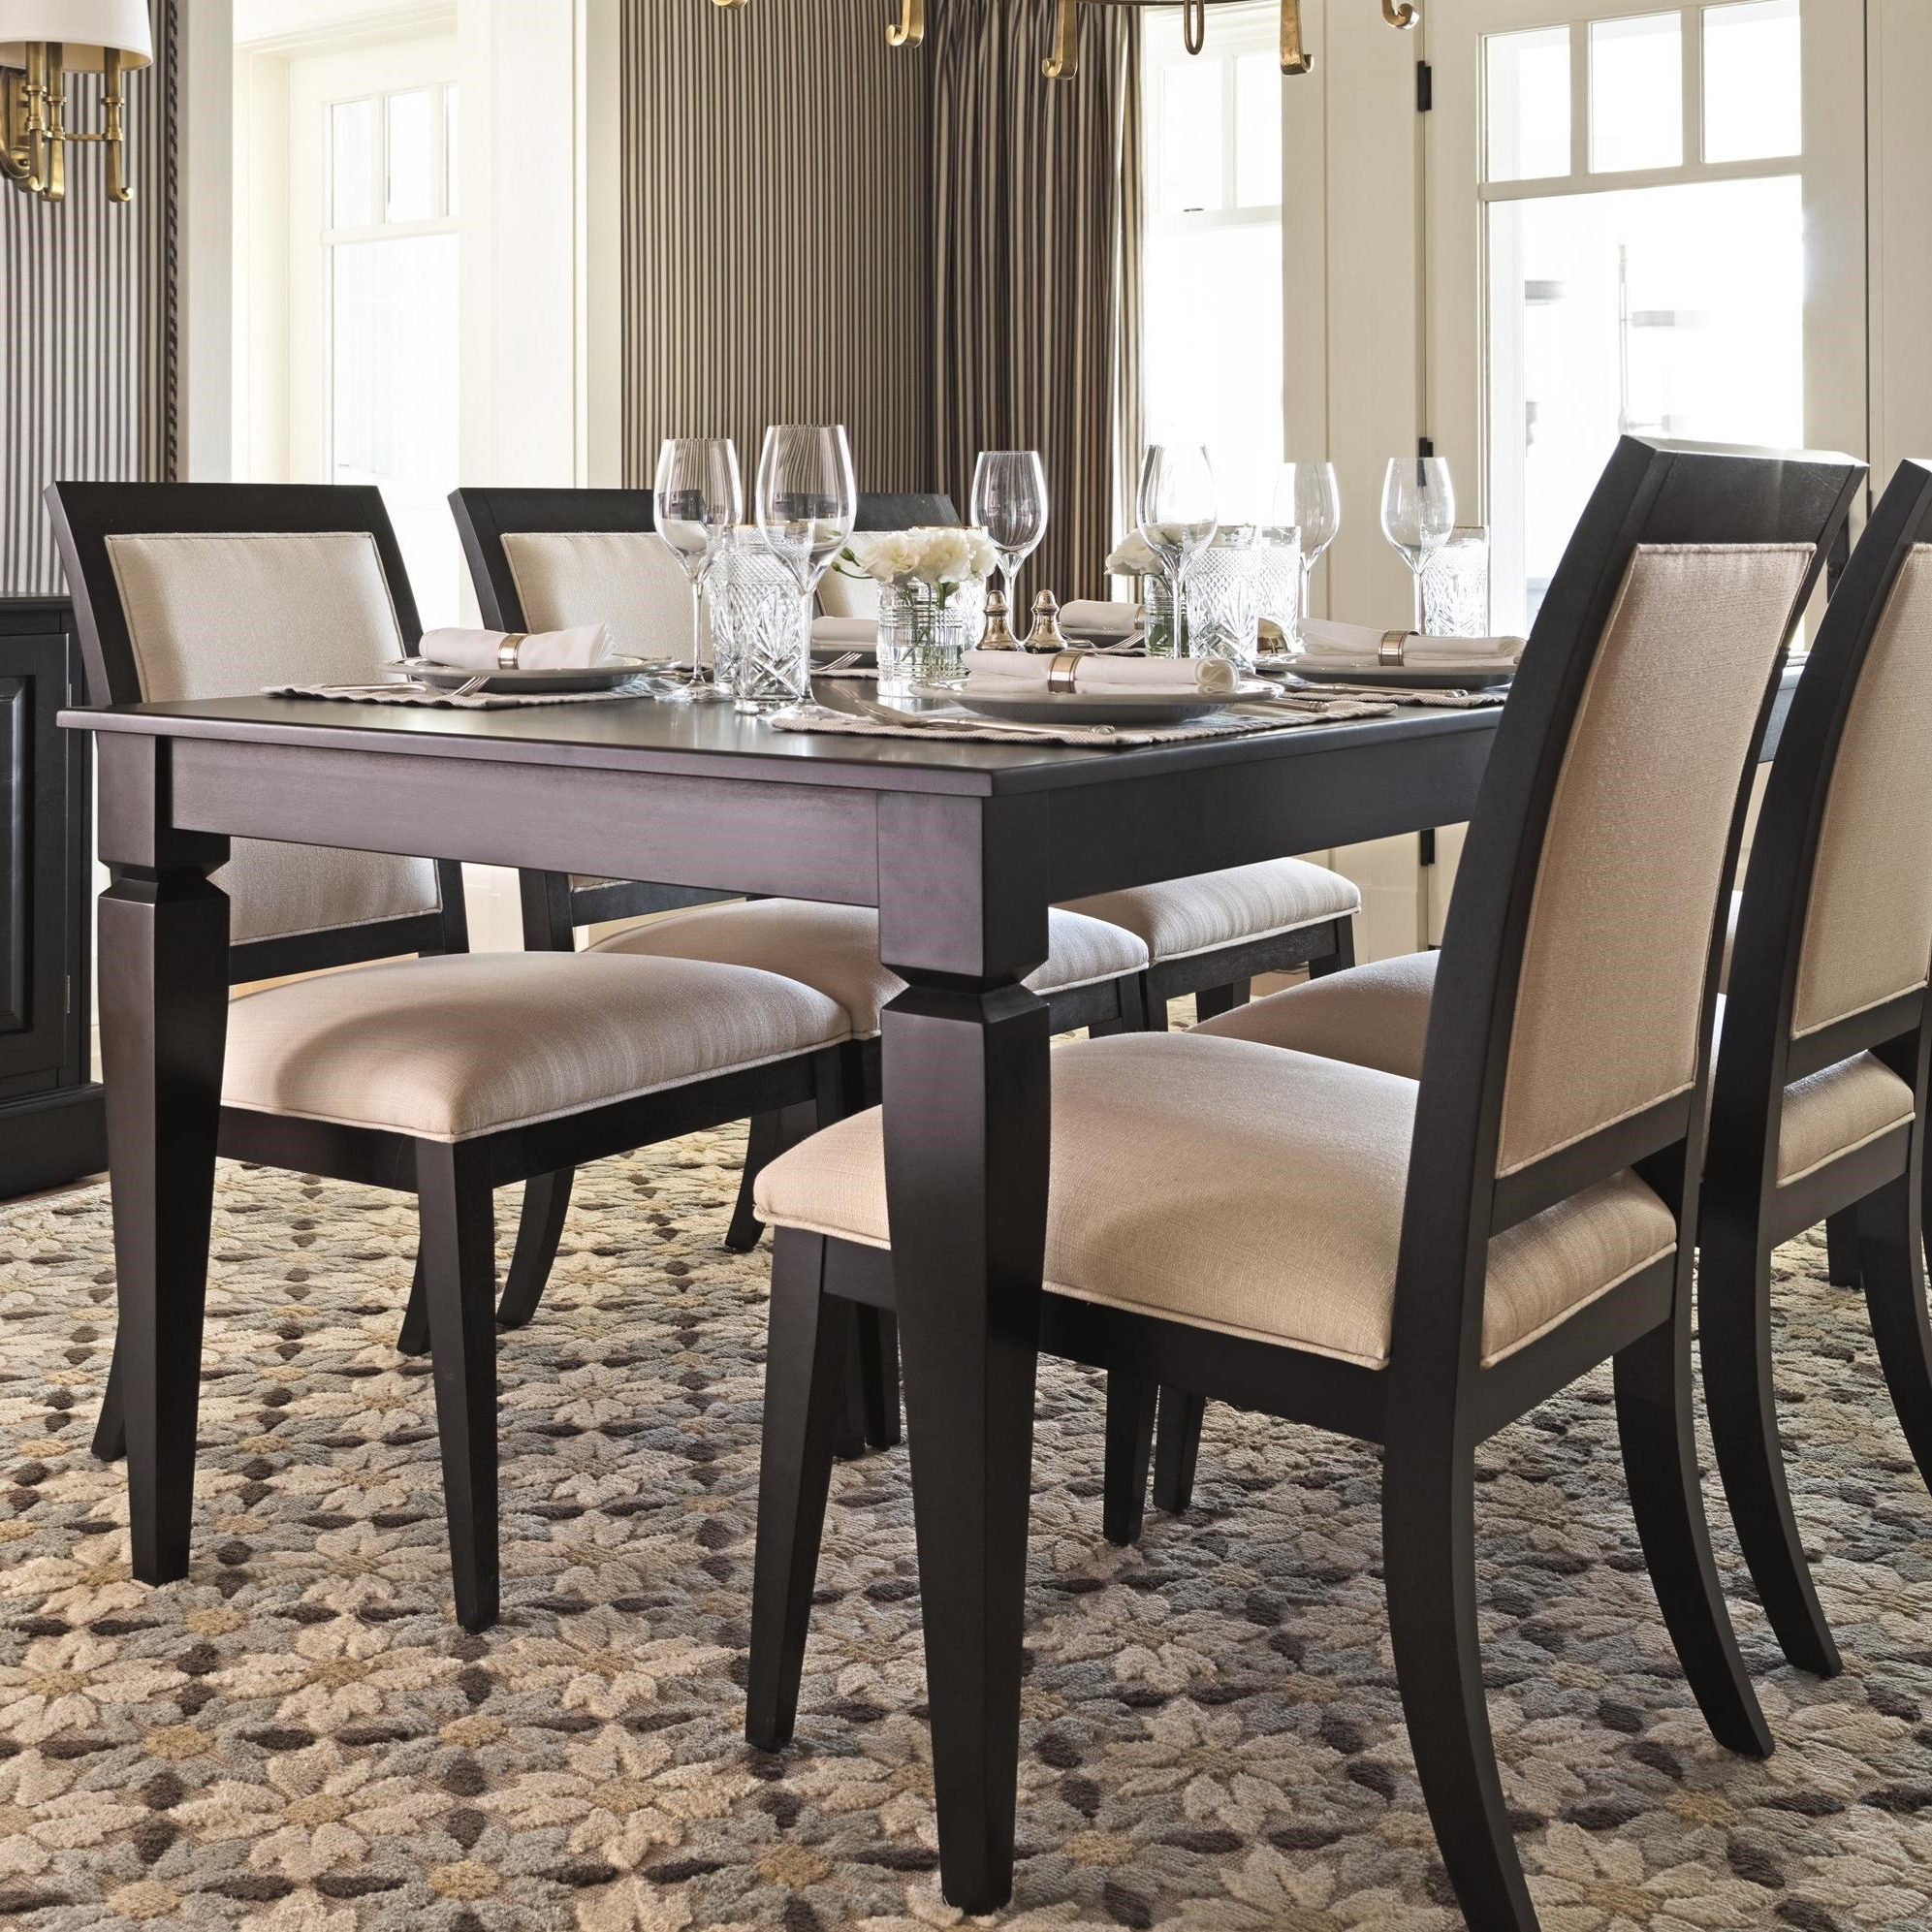 Recent Canadel Custom Dining Customizable Rectangular Dining Table Regarding Transitional 6 Seating Casual Dining Tables (View 20 of 30)